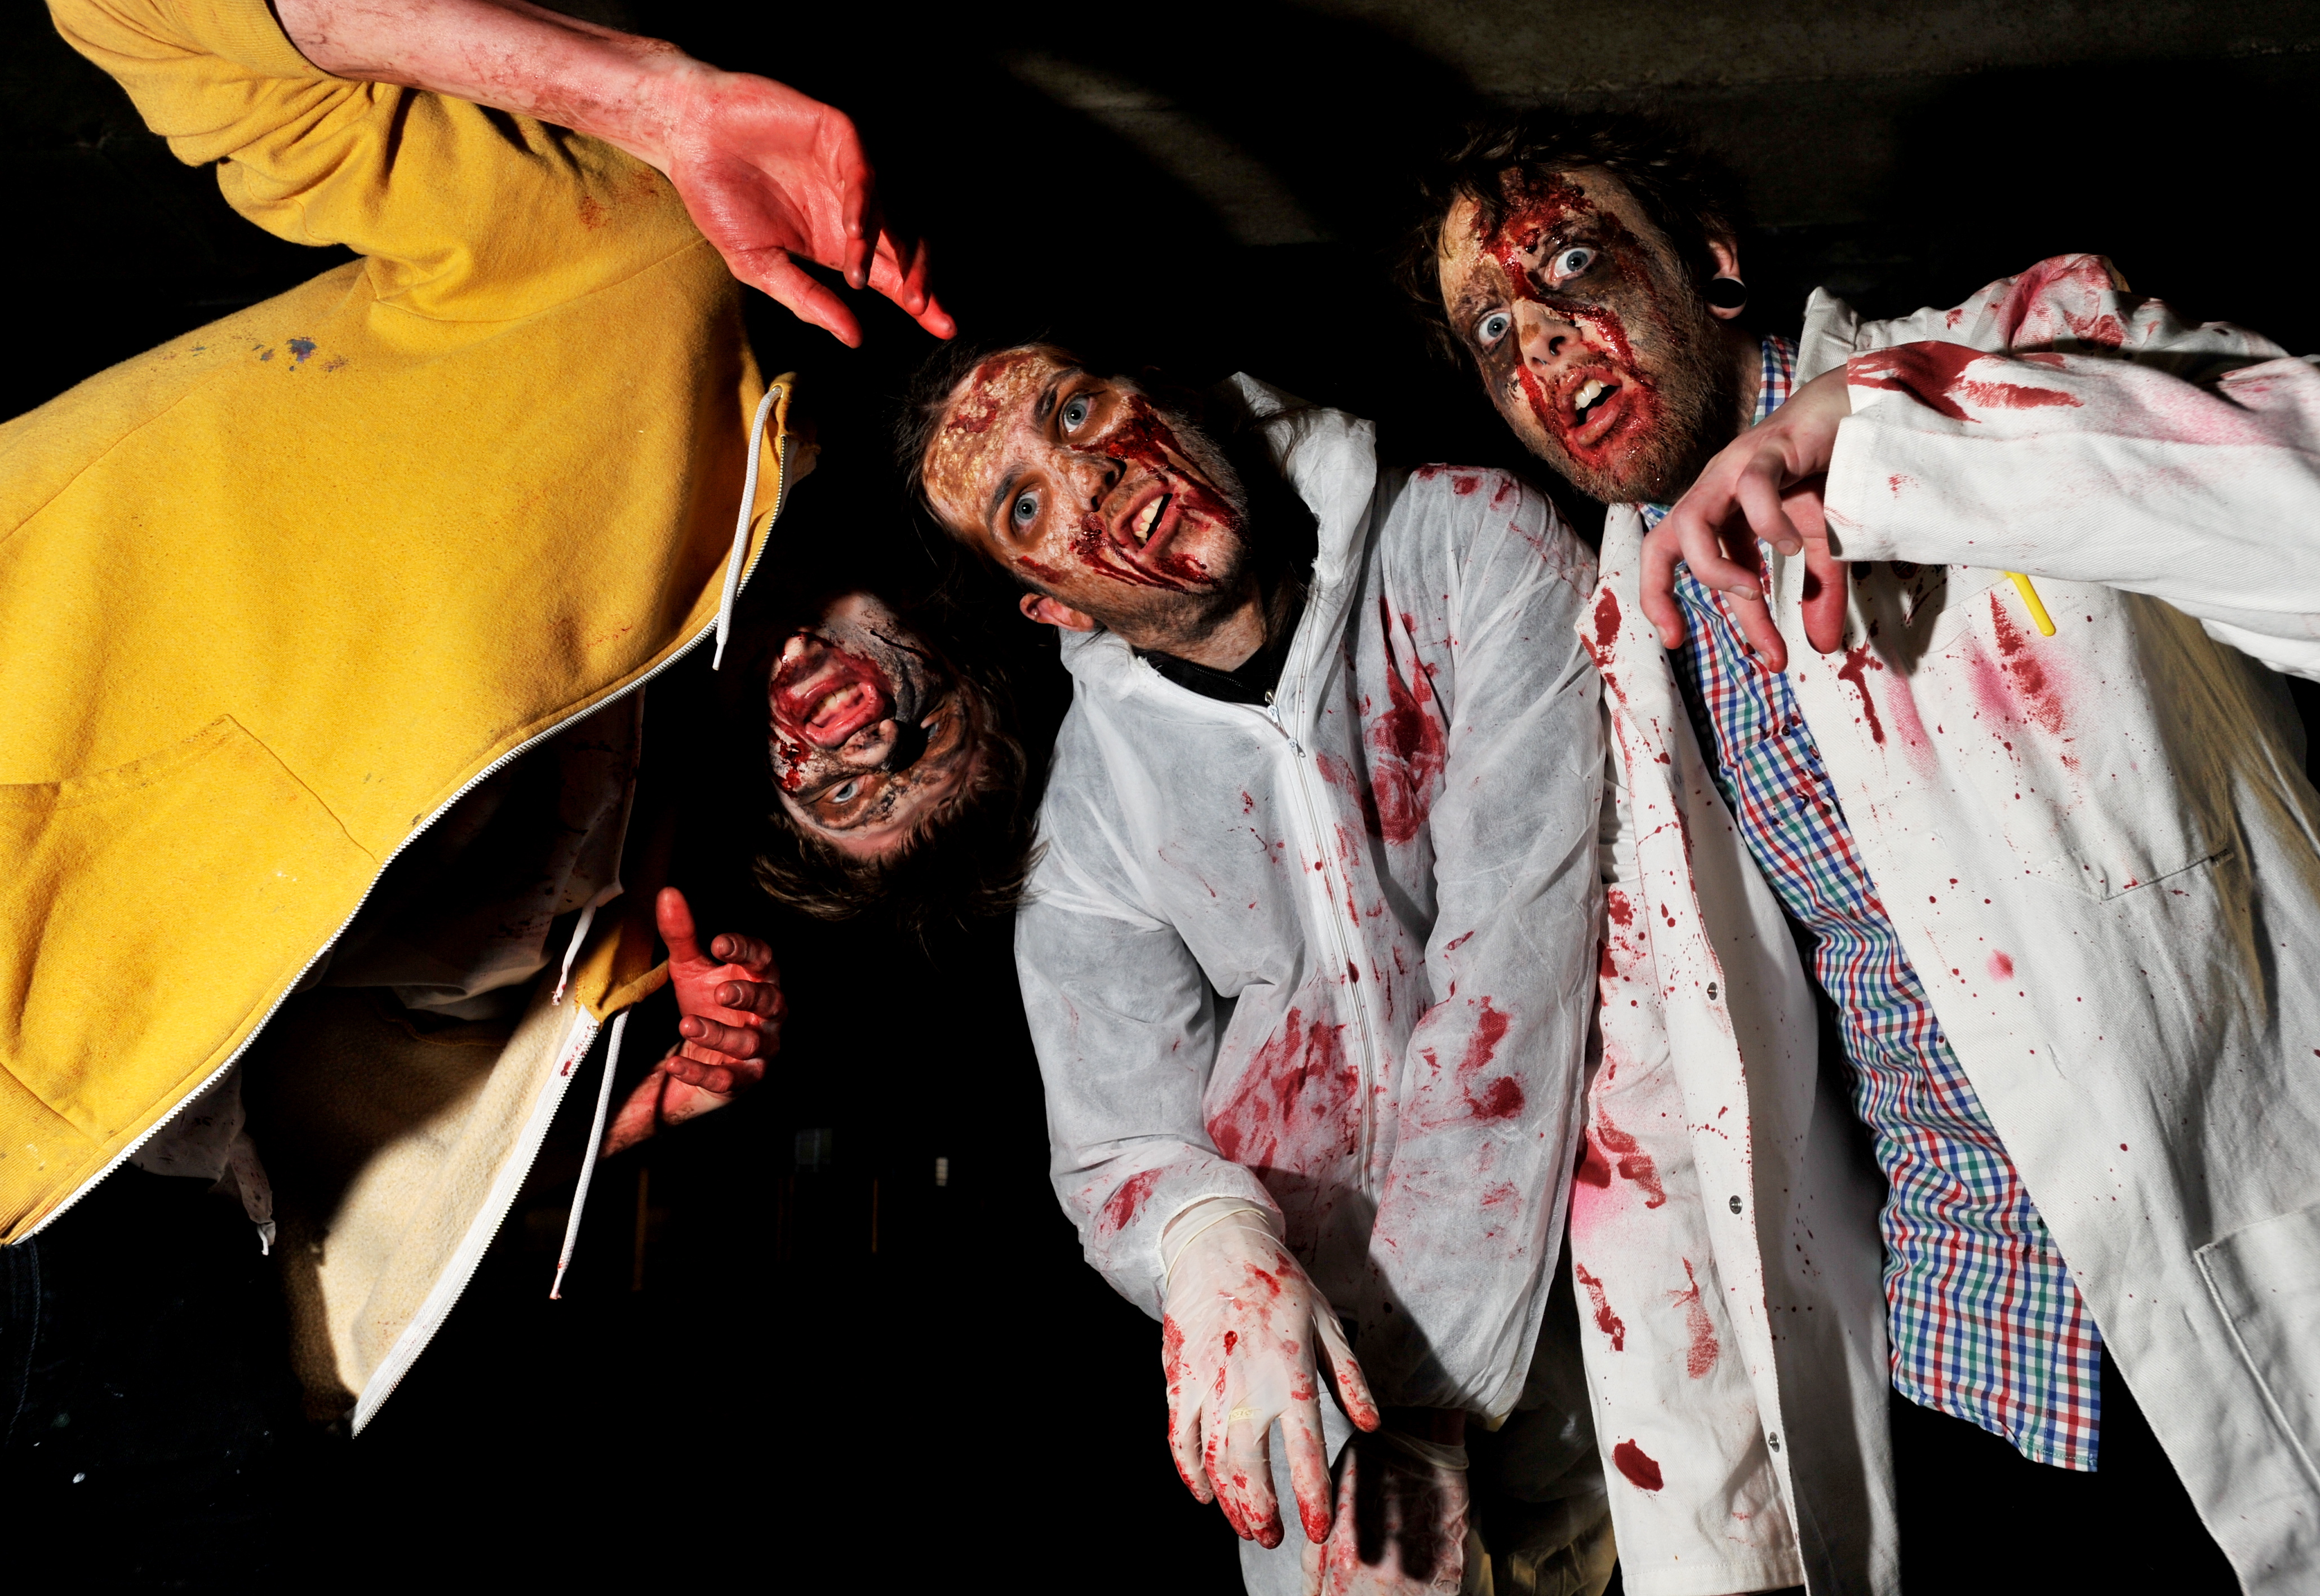 who knew the zombie apocalypse would be so much fun